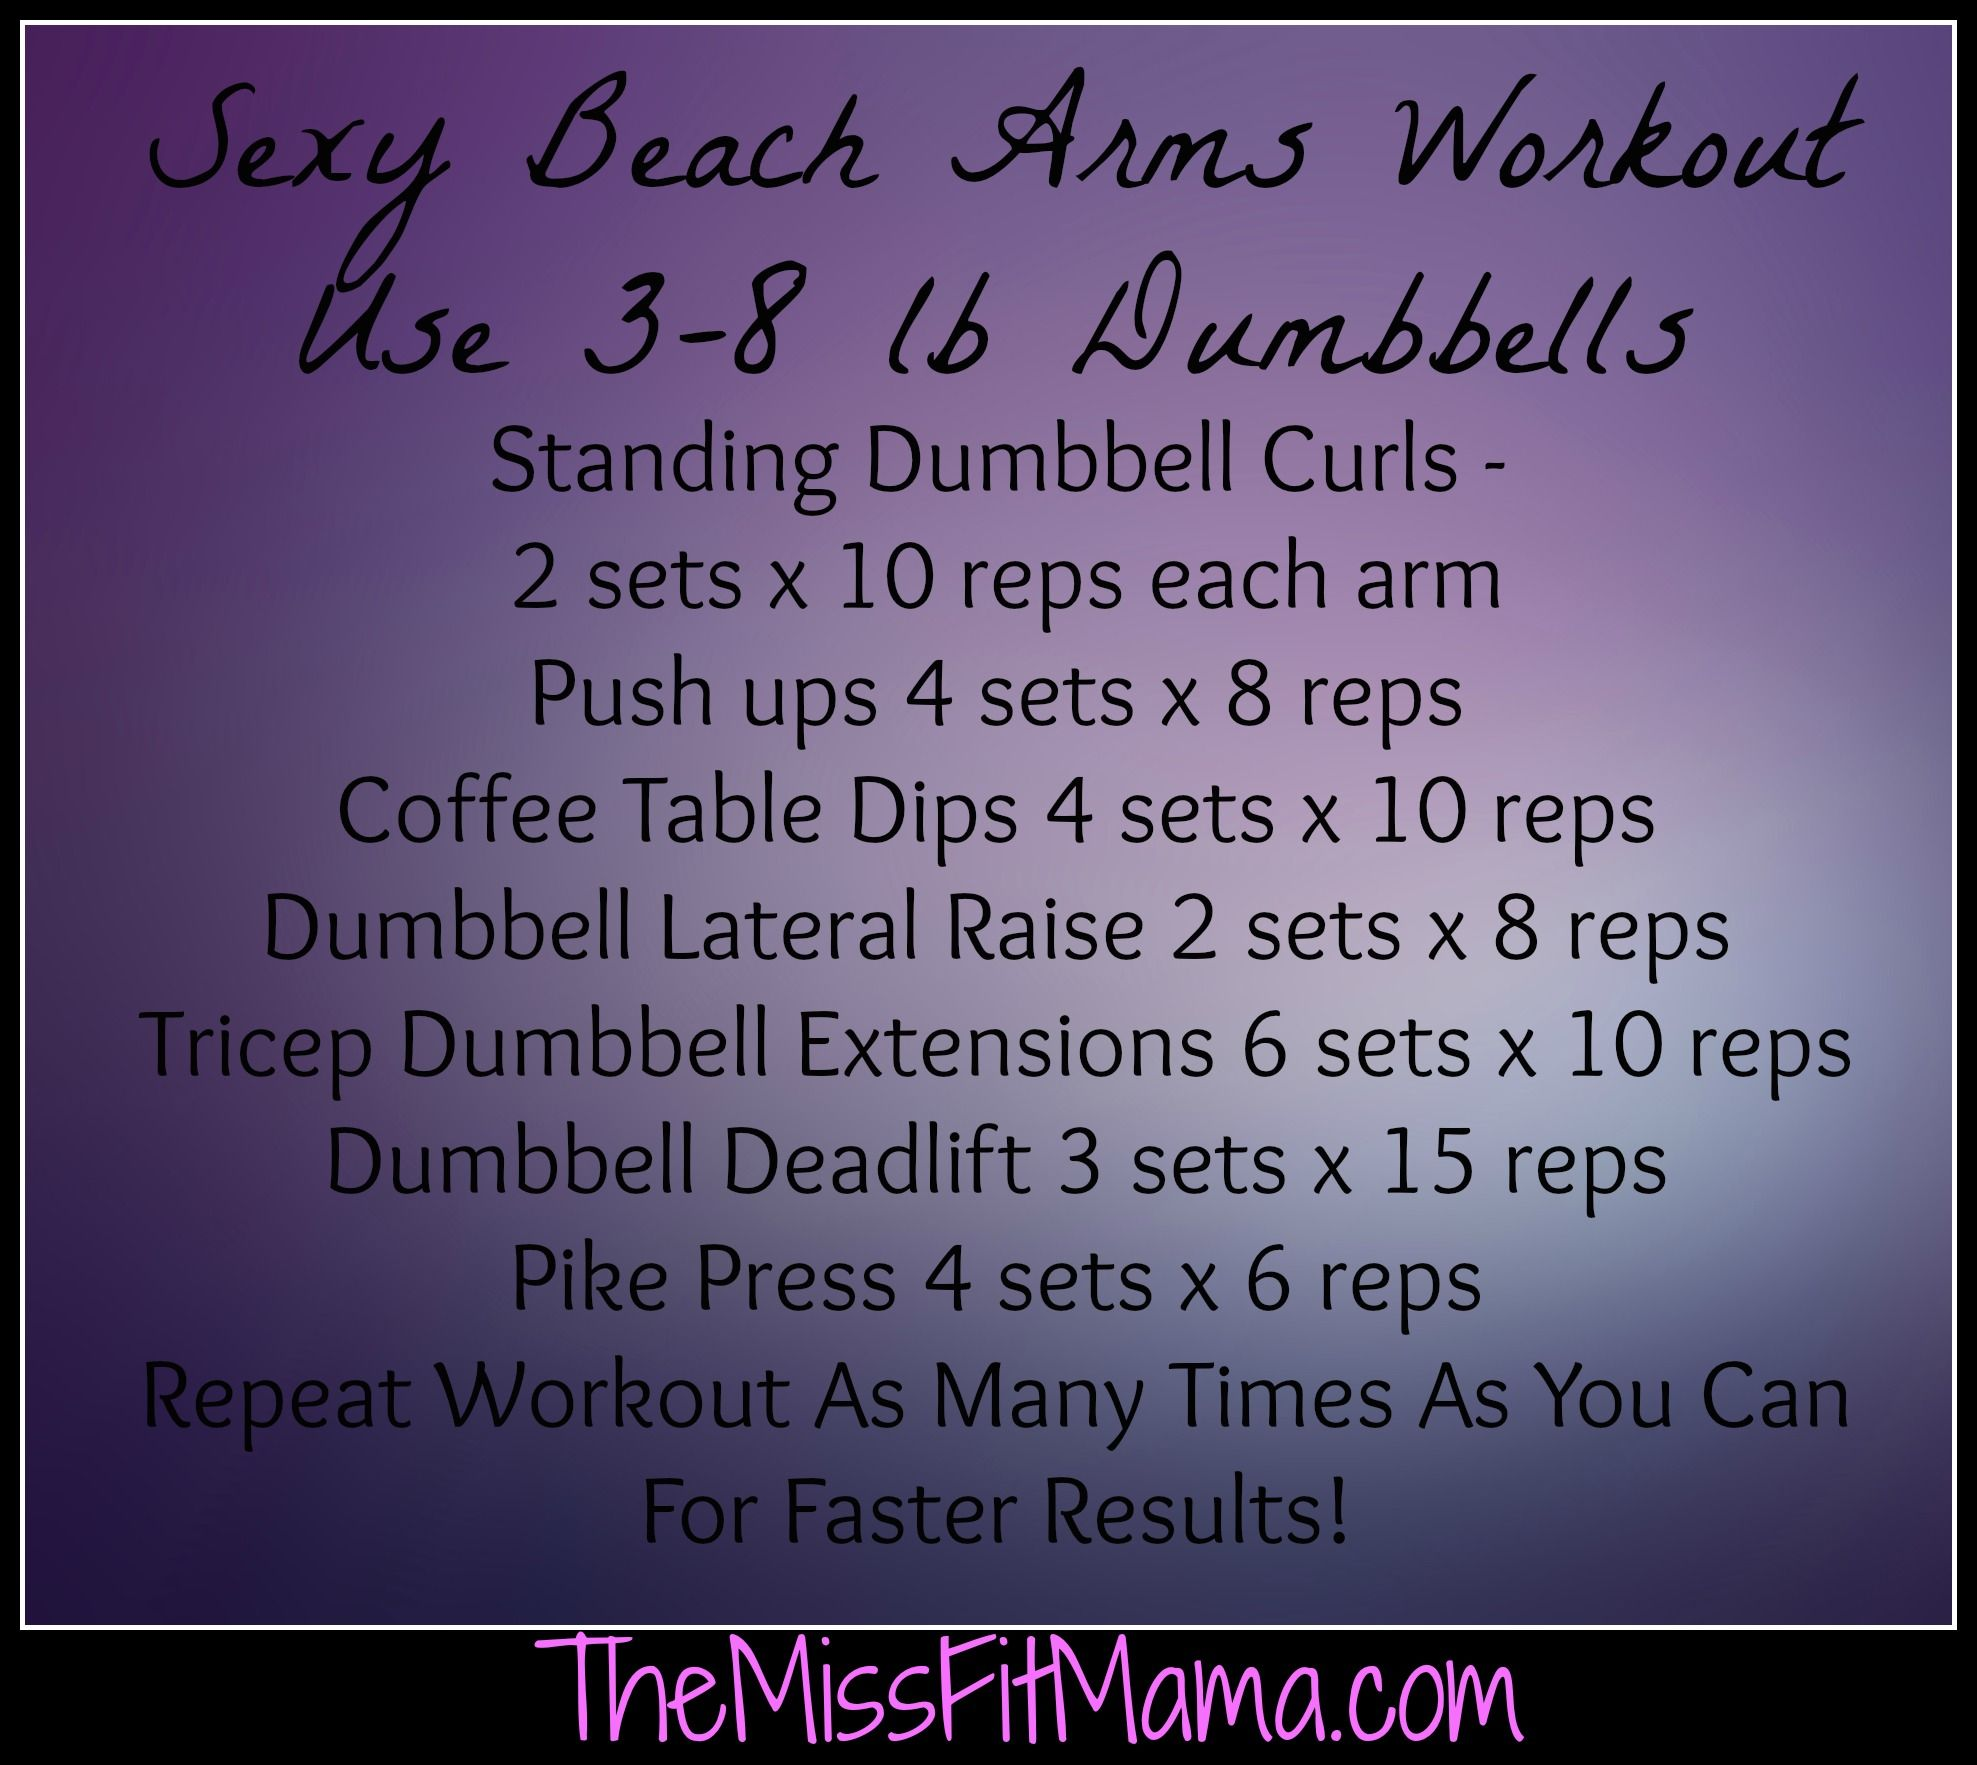 Sexy Beach Arms Workout Click Here